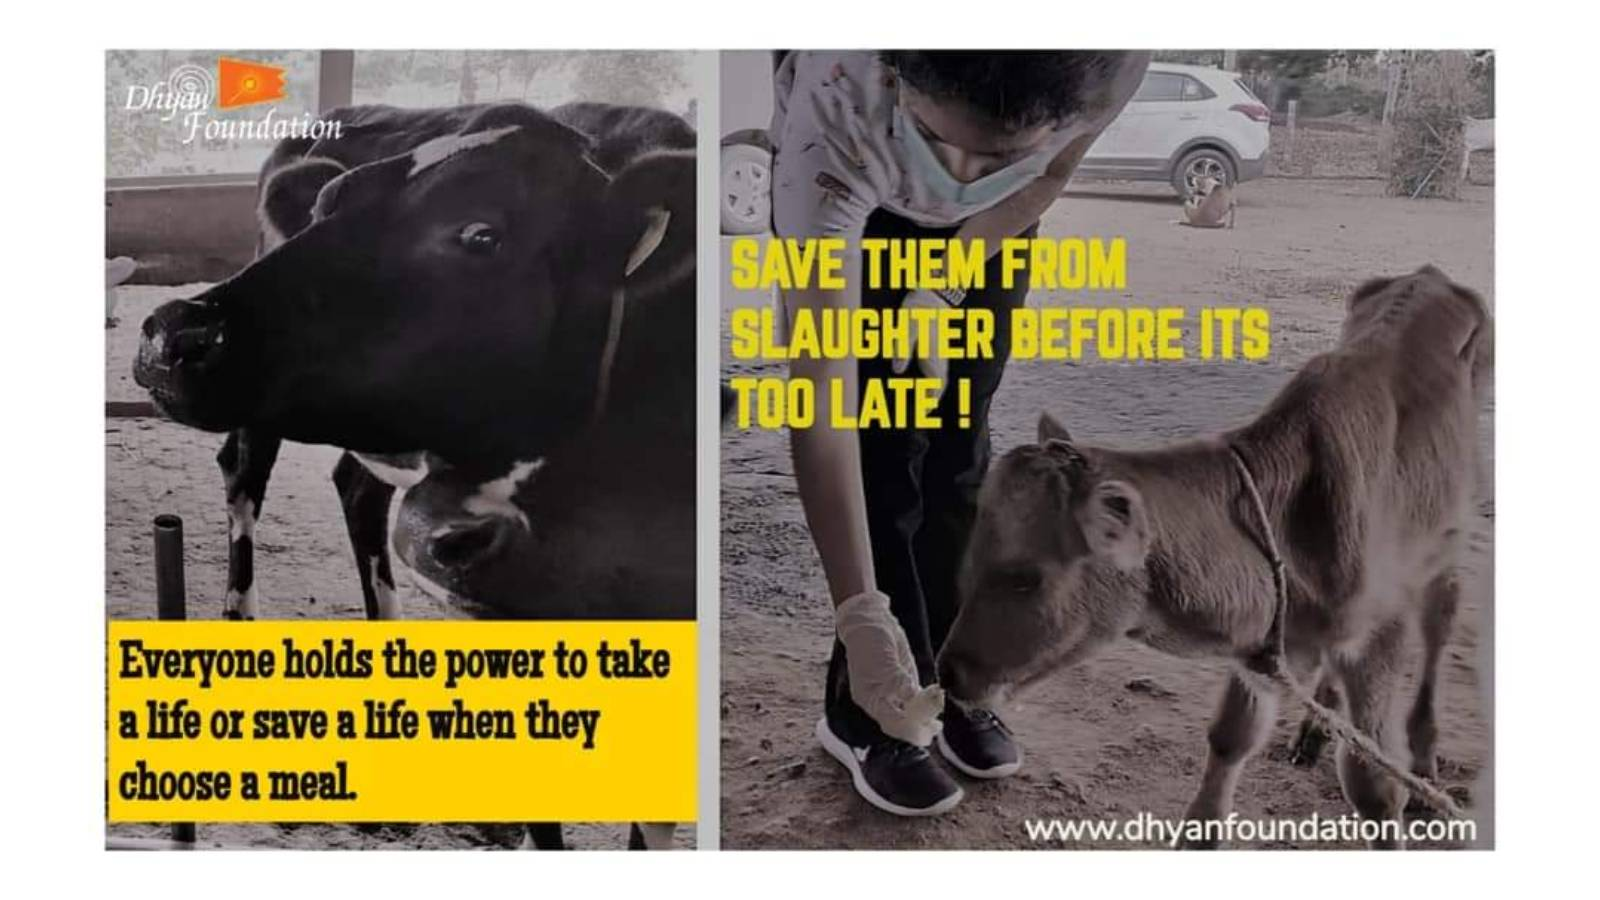 Save Them from Slaughter